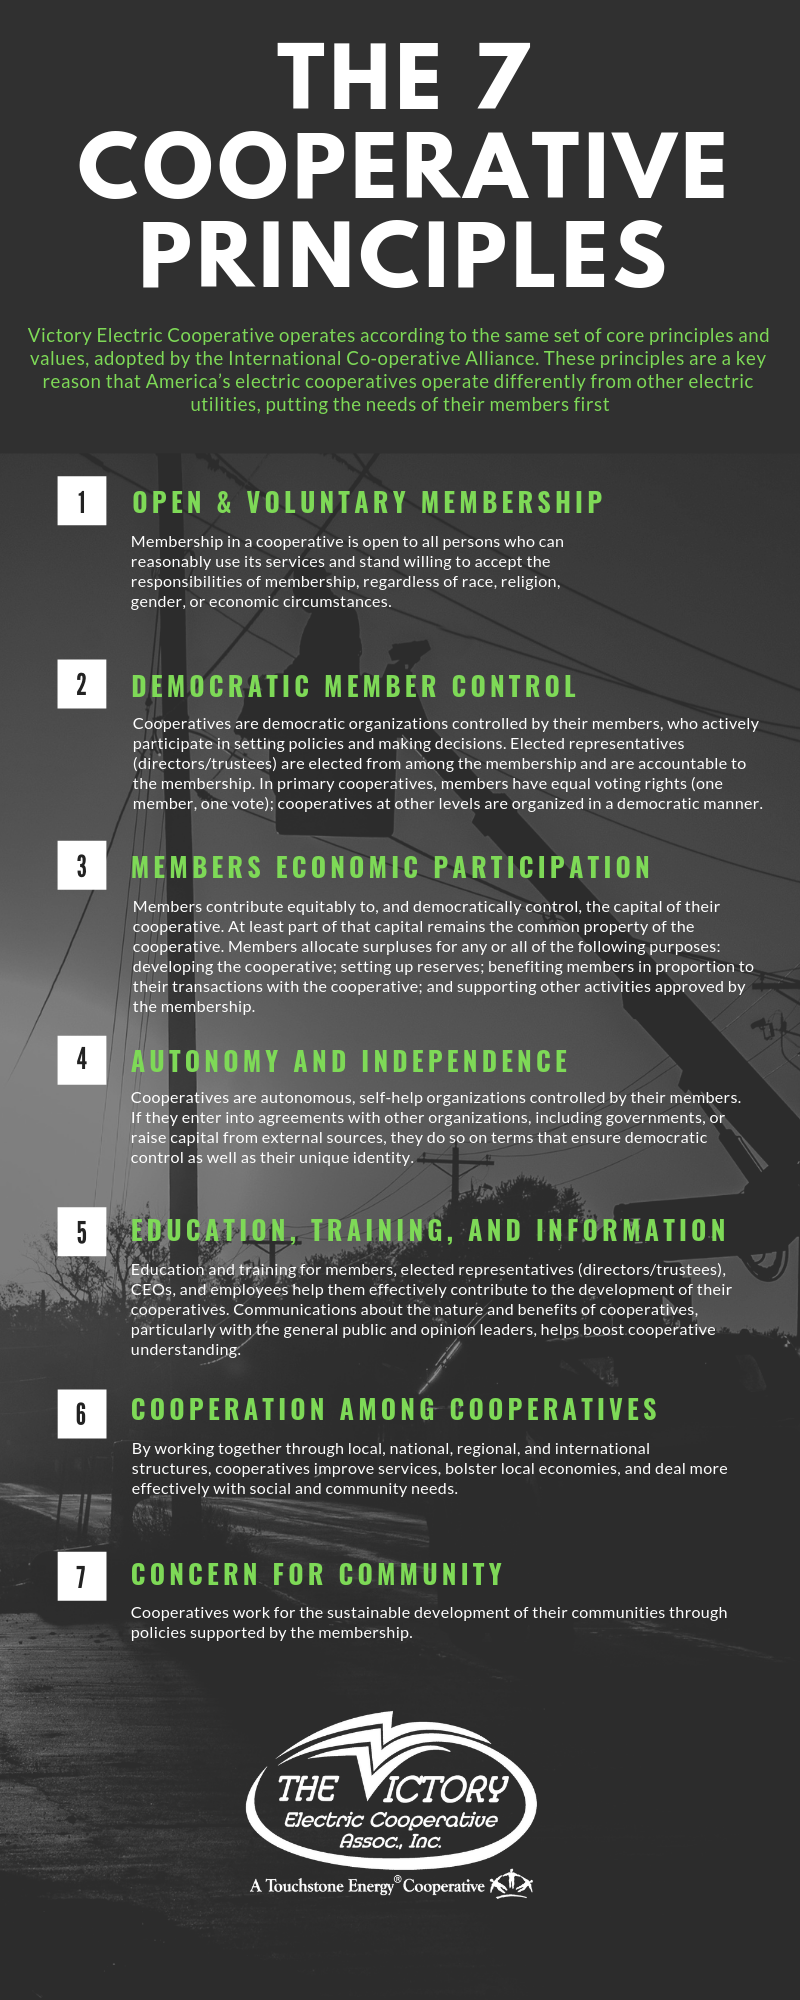 The 7 Cooperative Principles